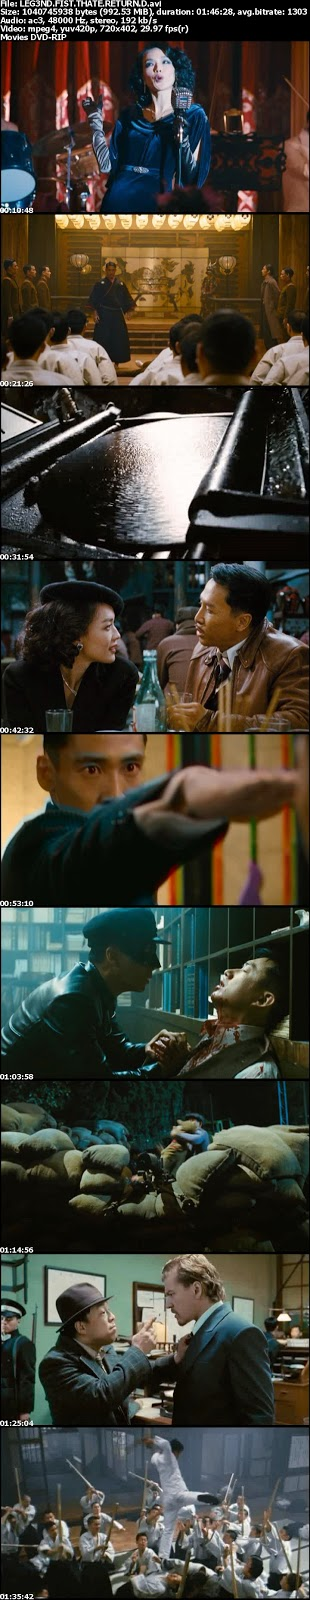 Capturas - Legend of the Fist: The Return of Chen Zhen